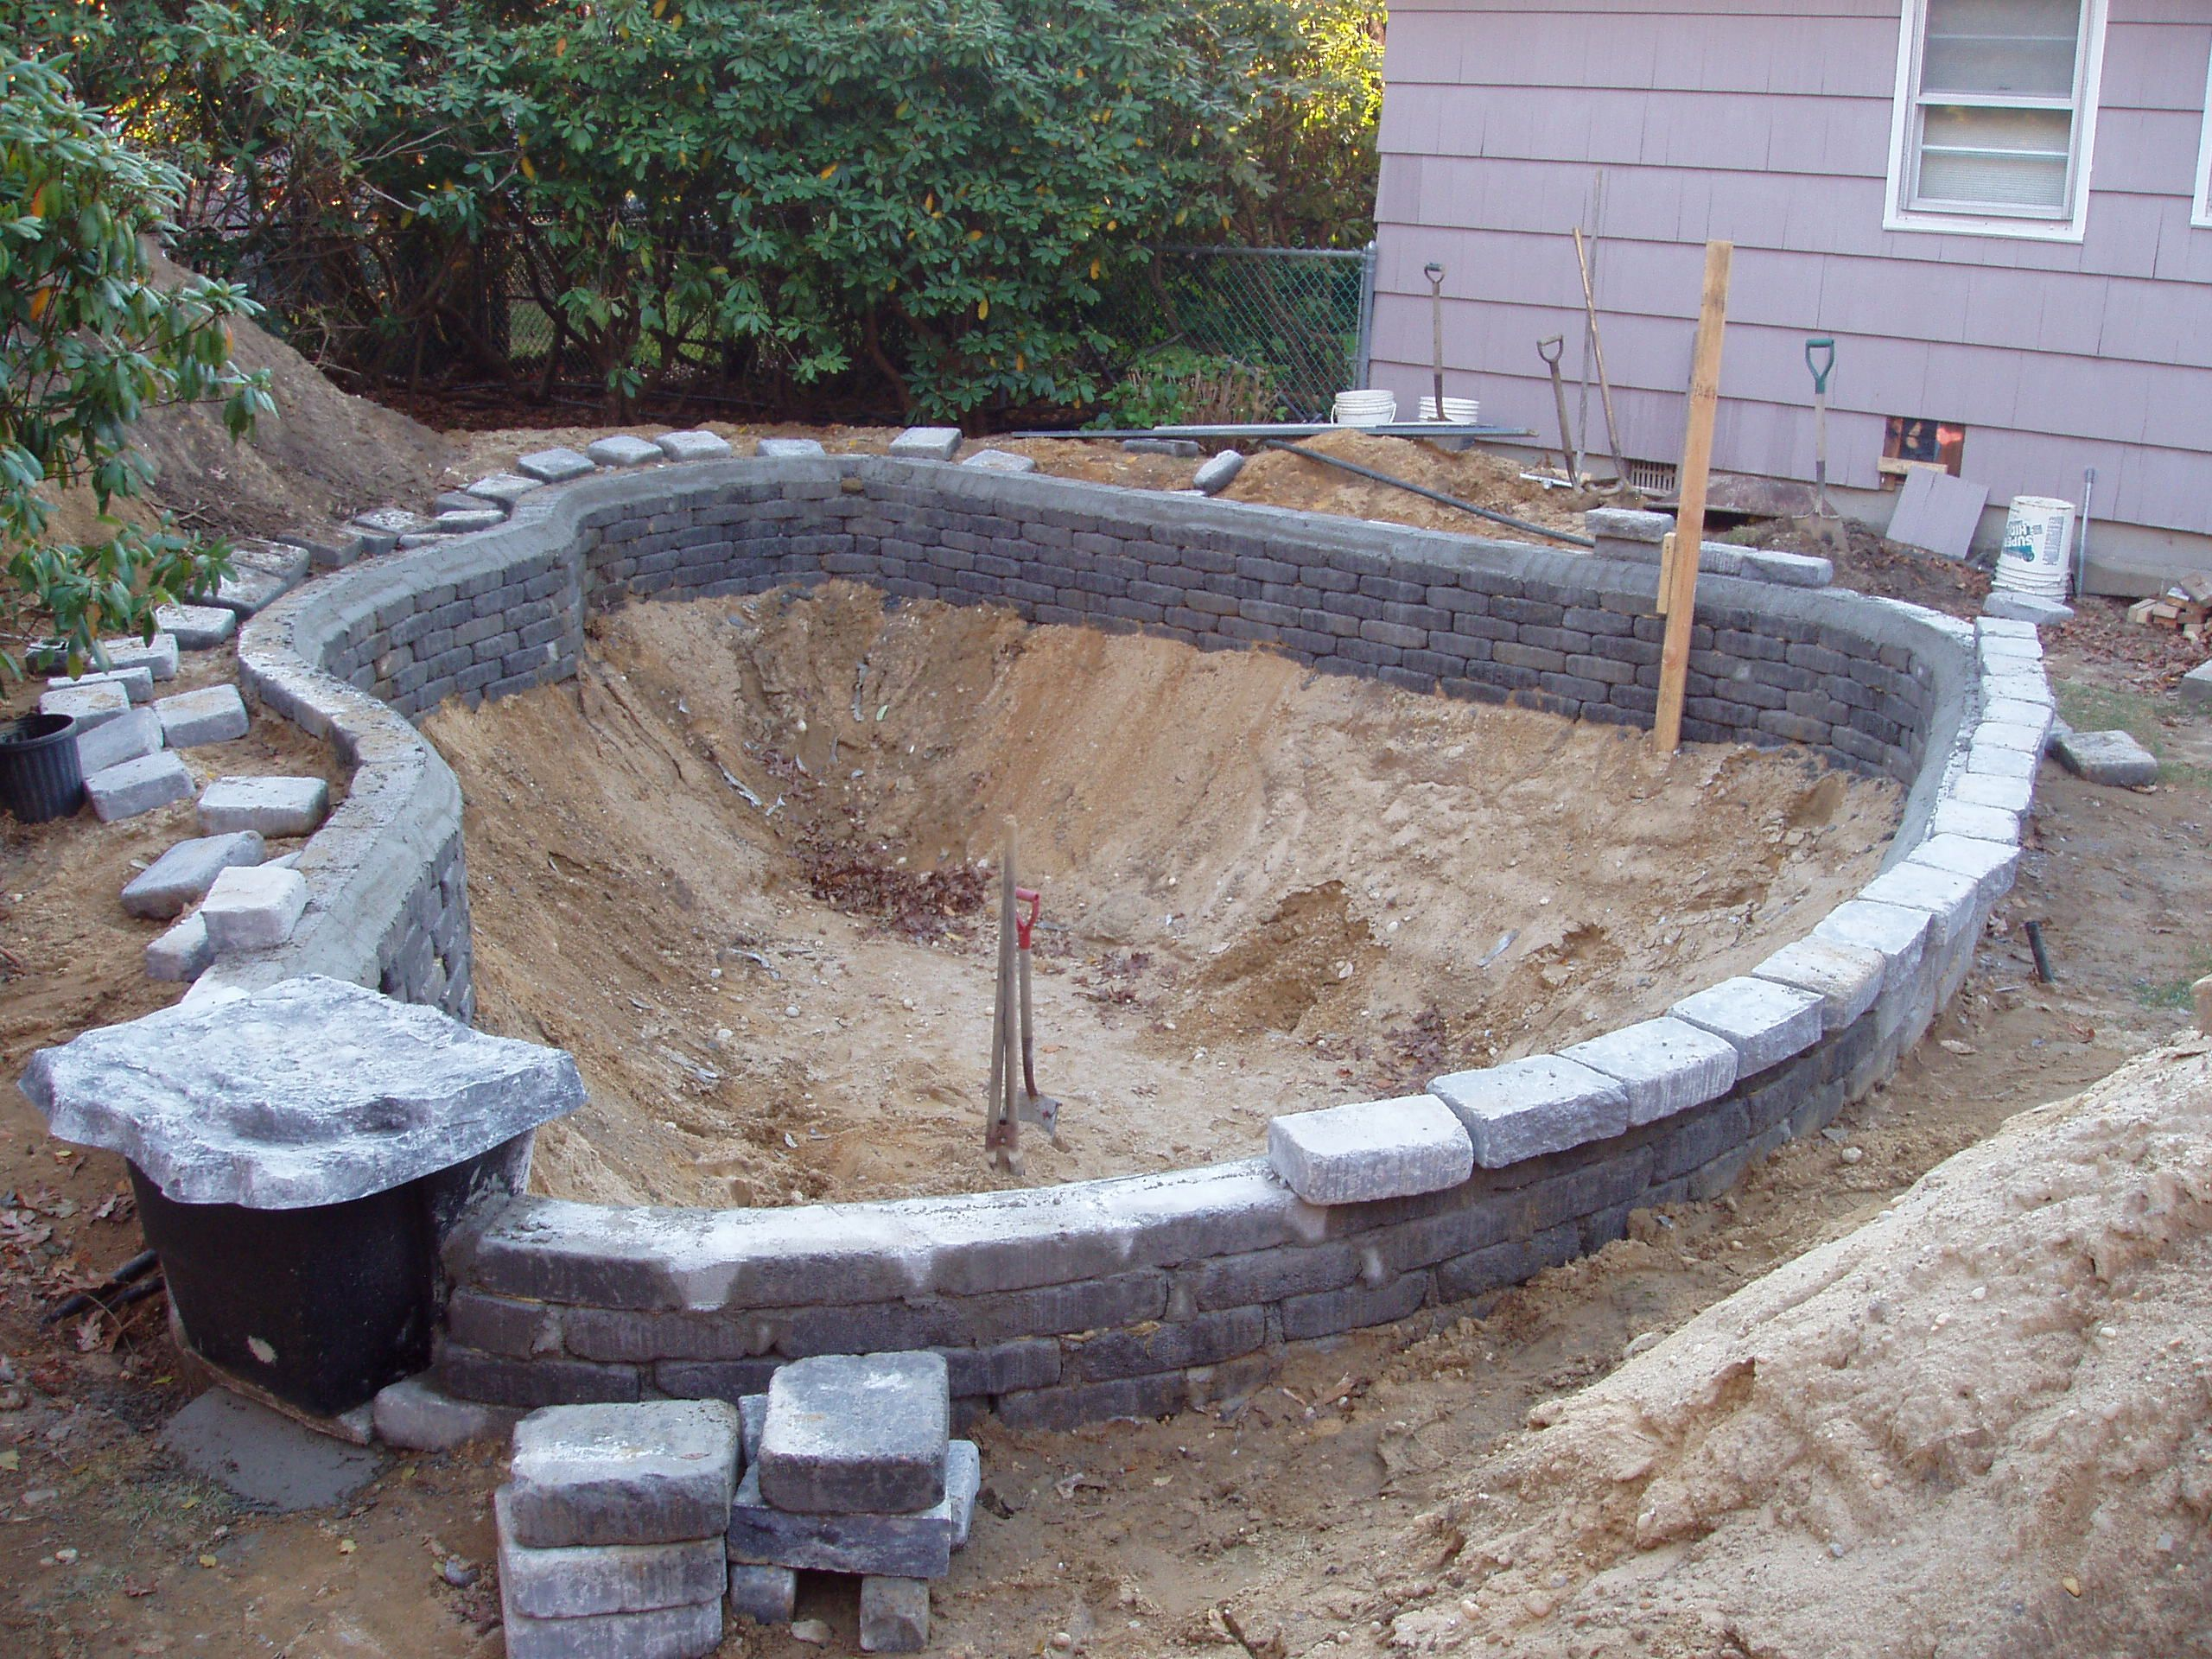 Pond design and construction google search aquaponics for Raised fish pond designs